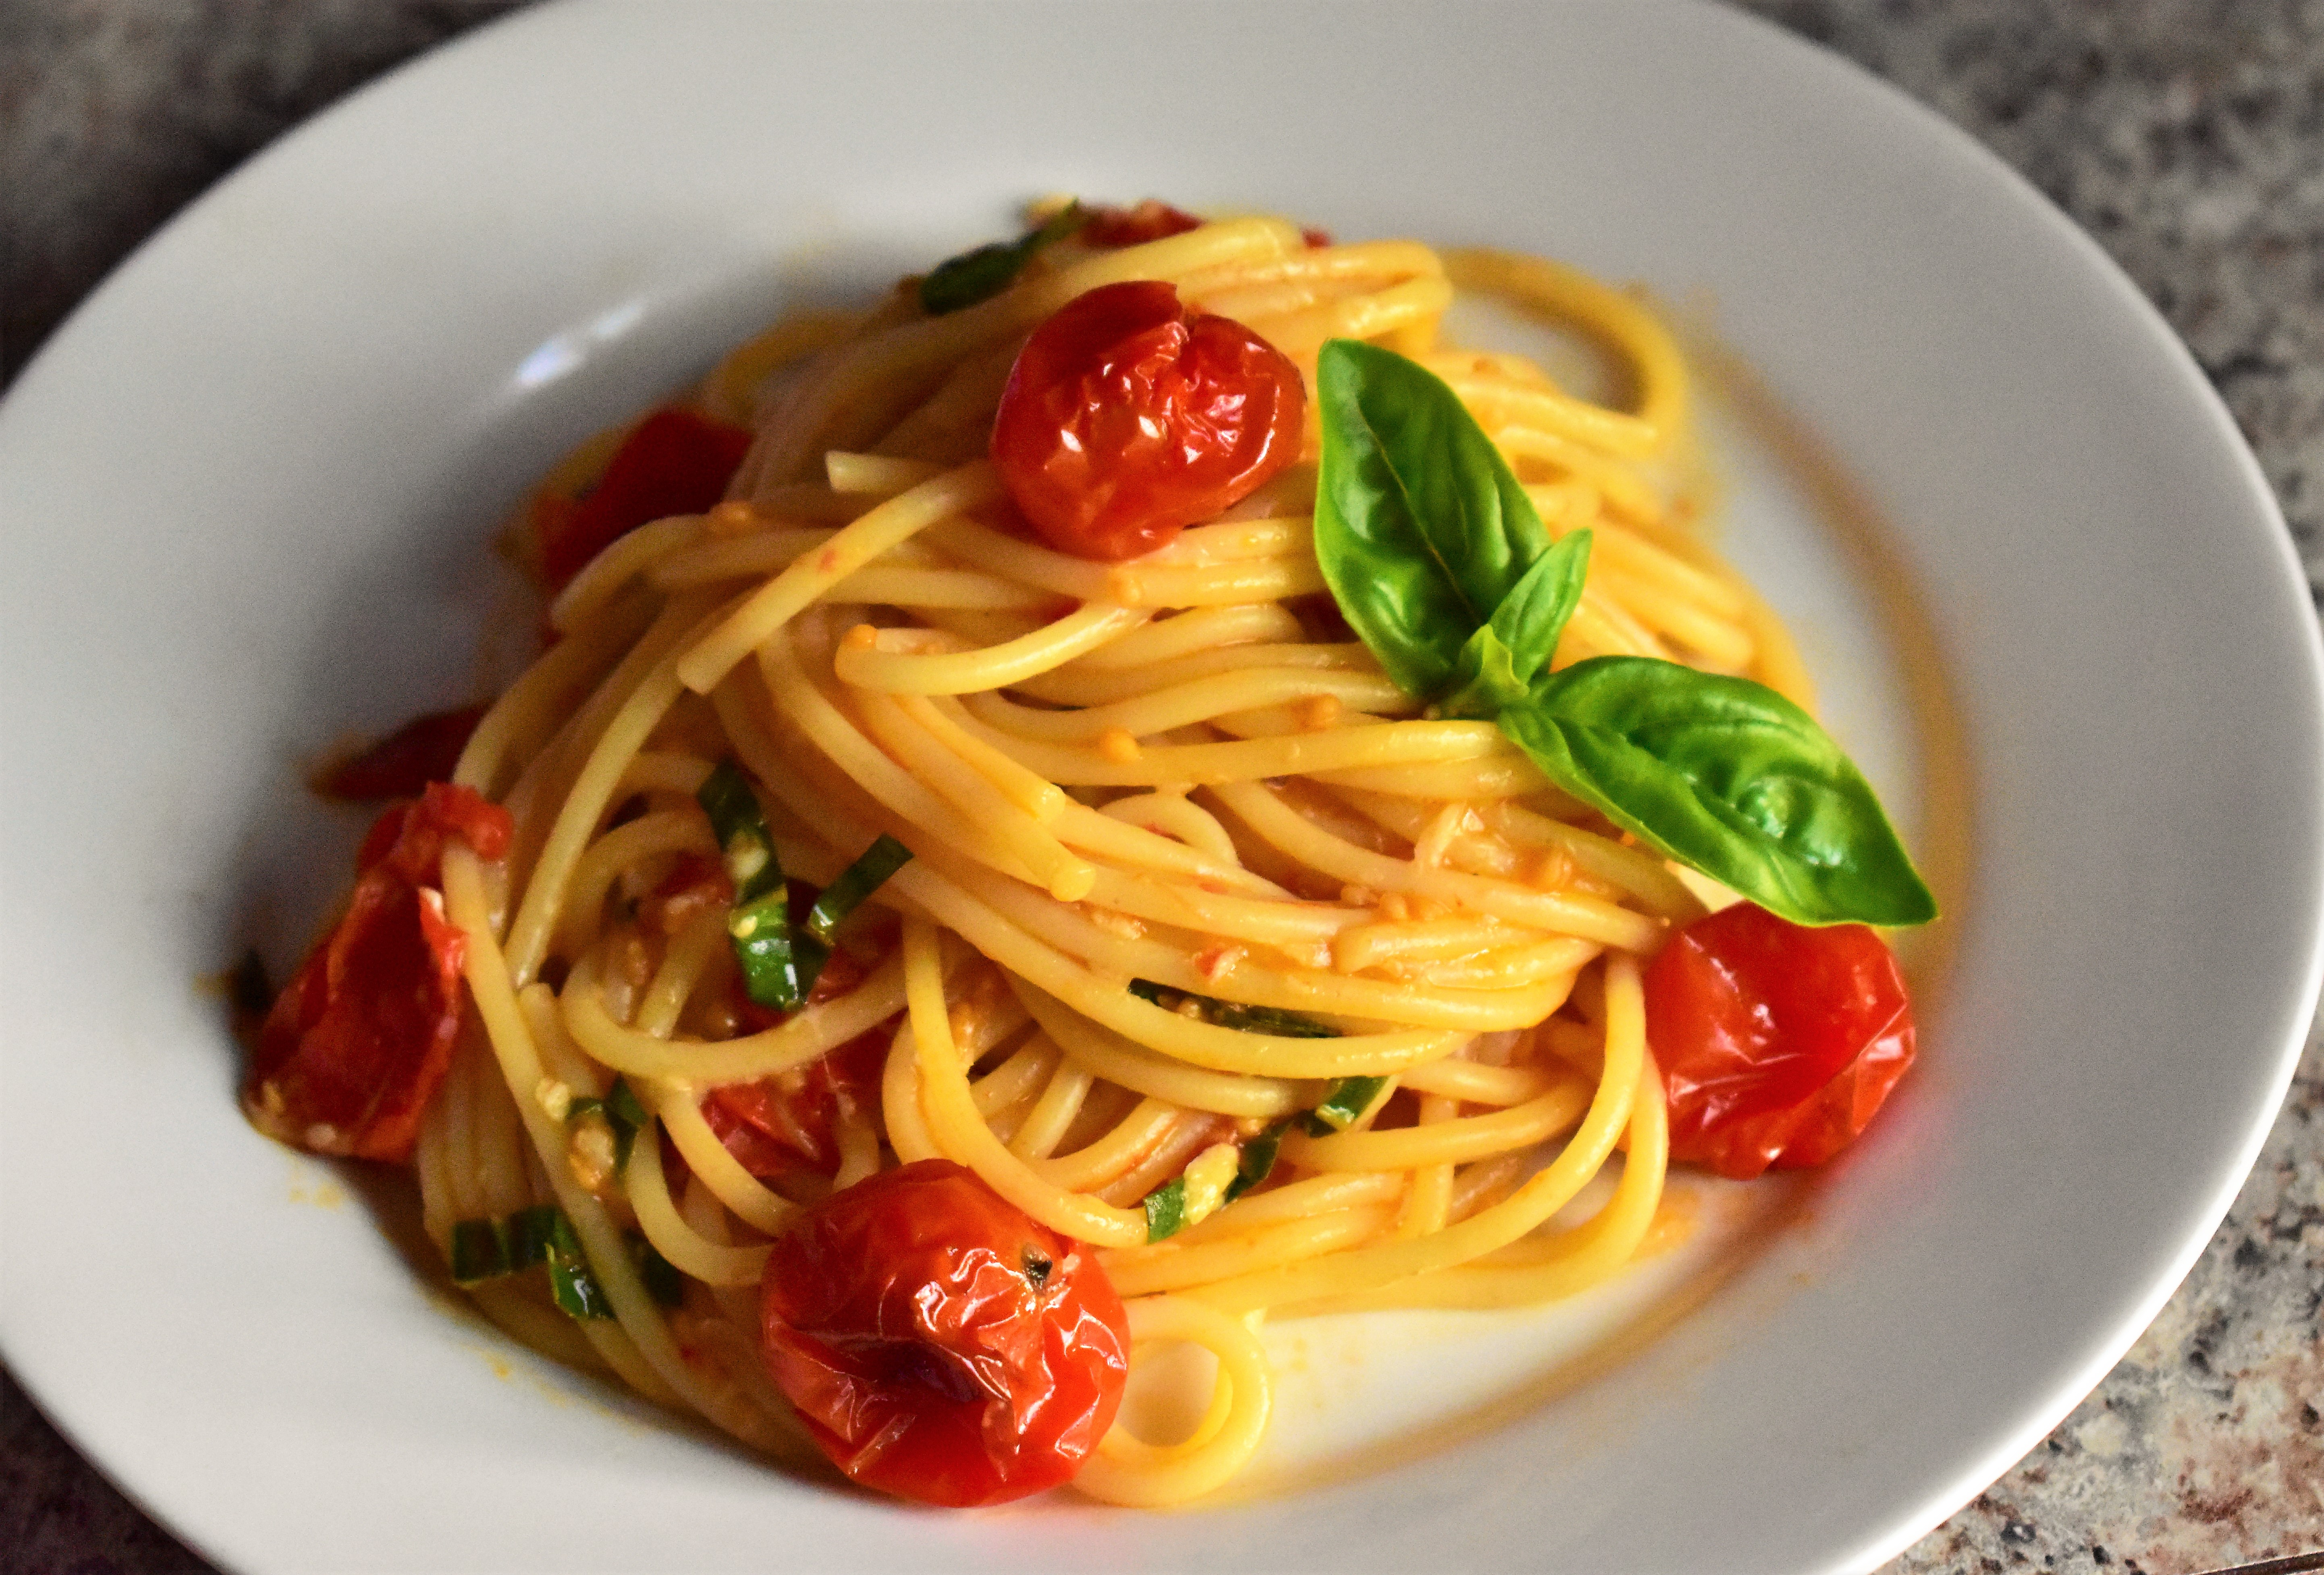 Roasted Cherry Tomato Sauce with Spaghetti